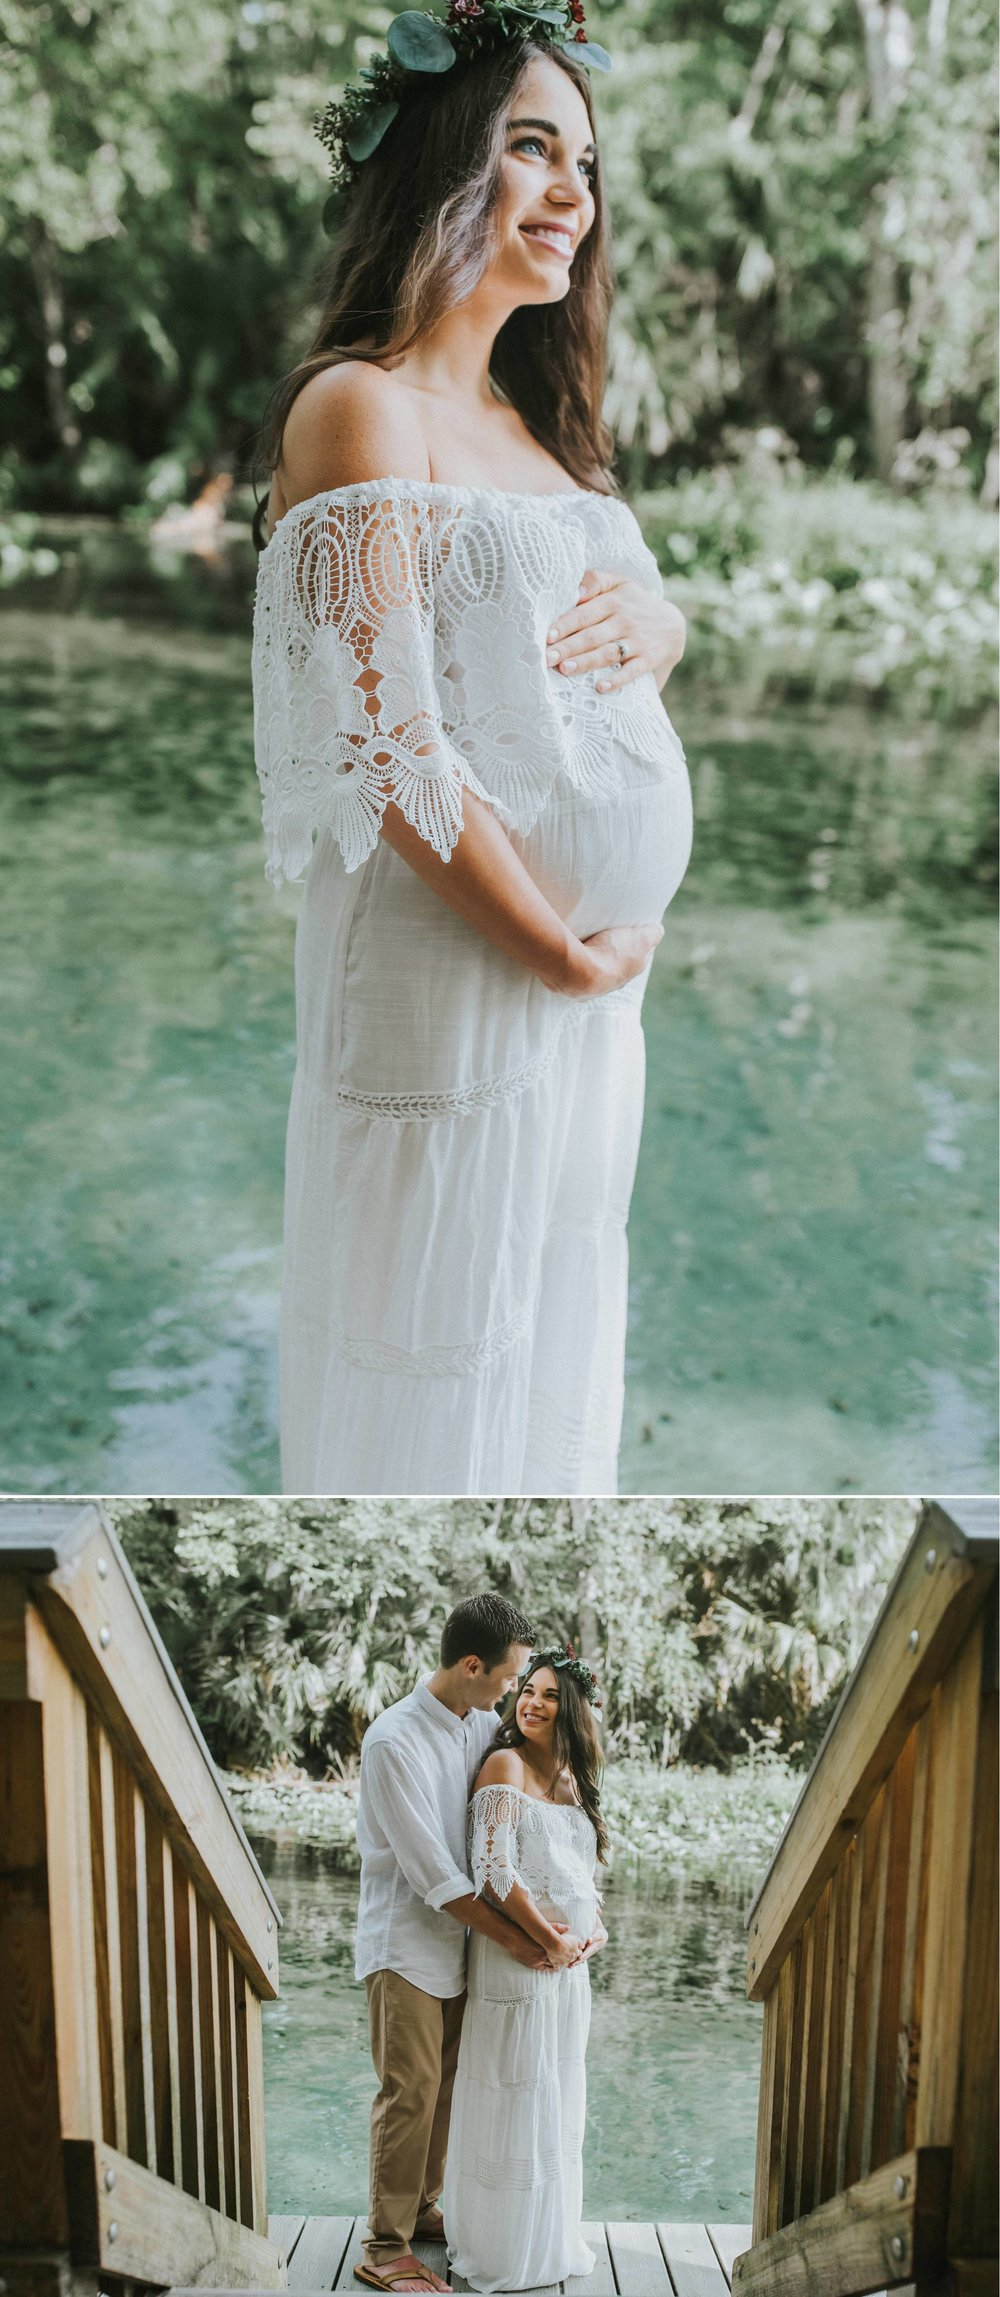 Wekiwa Springs Boho DIY Succulent Flower Crown Maternity Photos-Julie+Robby 6.jpg